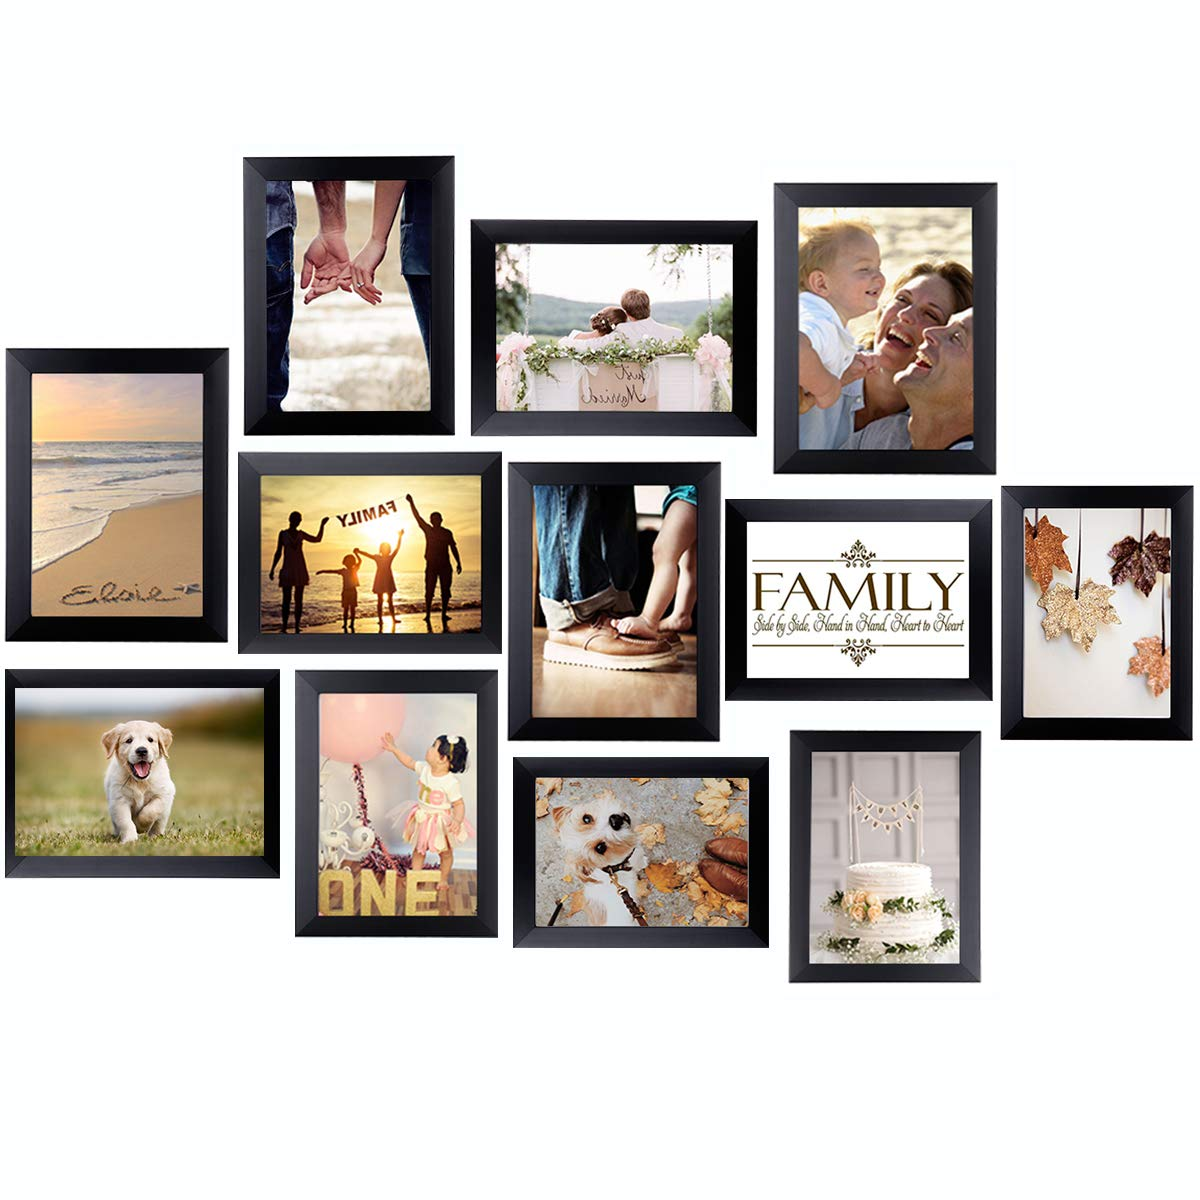 Homemaxs 5x7 Picture Frame Collage Gallery Wall Frame 12 Pack Photo Frames Collage Picture Frames for Wall or Tabletop Black by Homemaxs